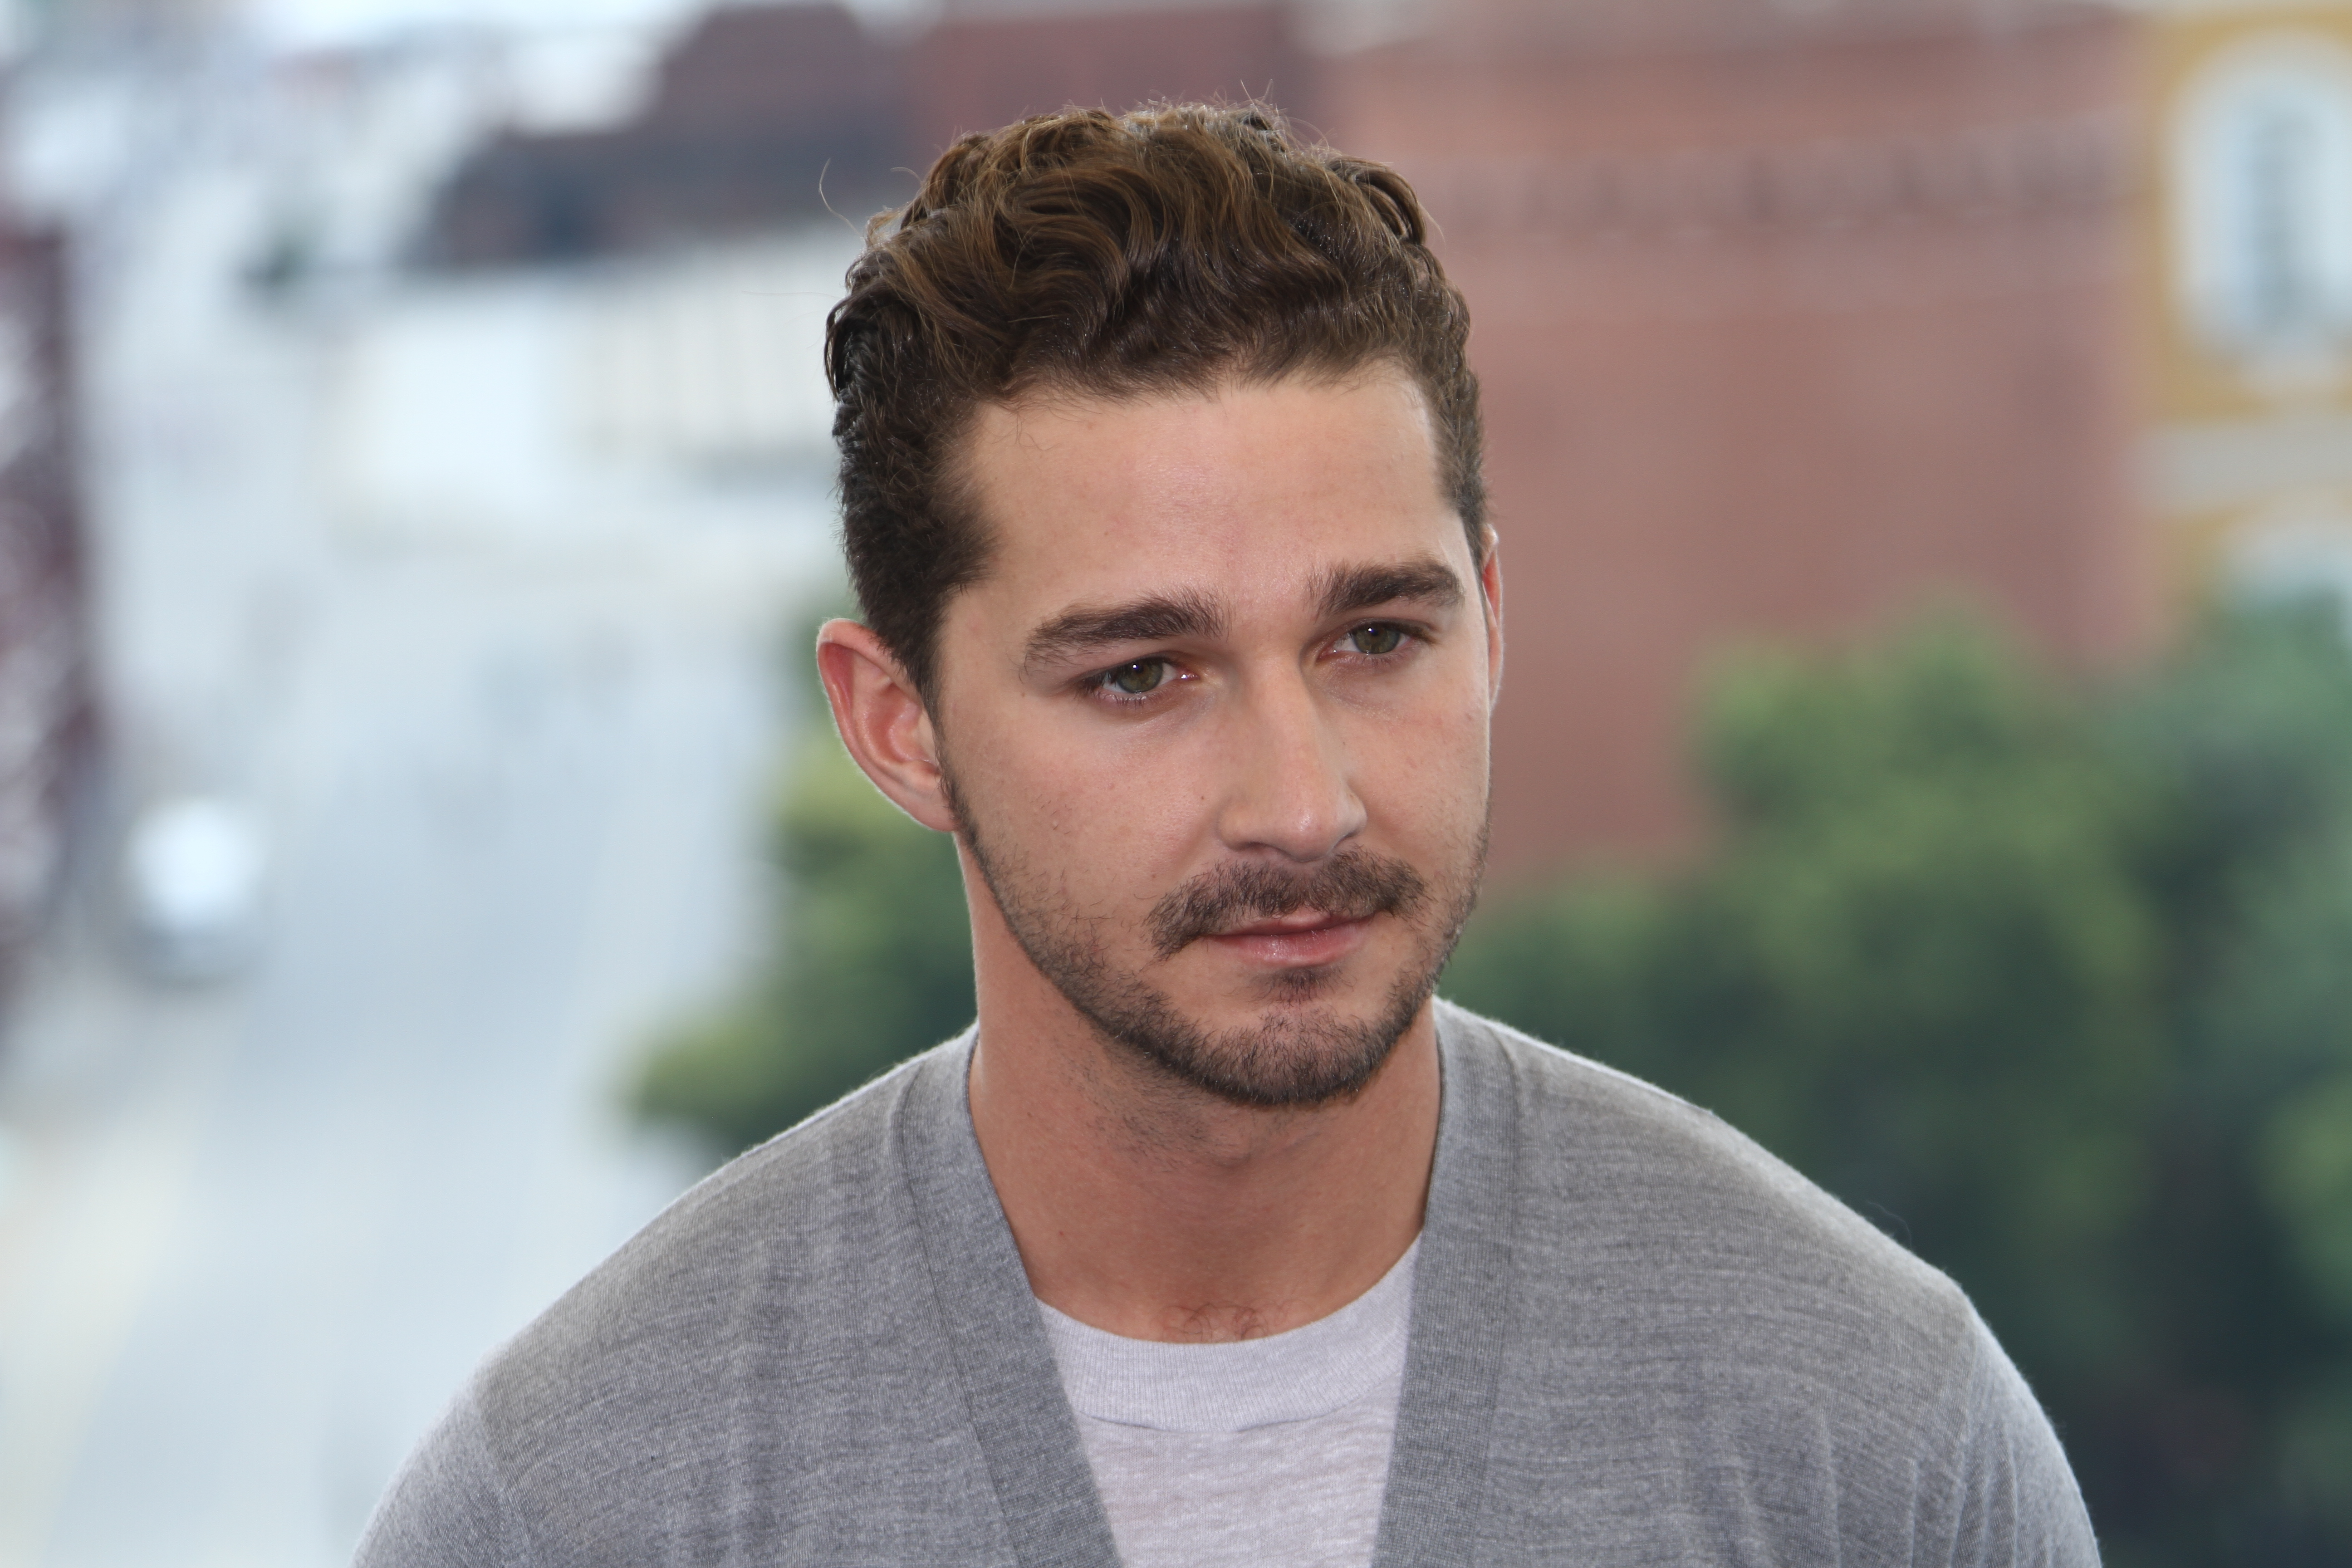 Here's An Uncomfortable Video Of Shia LaBeouf Rapping About Mashed Potatoes